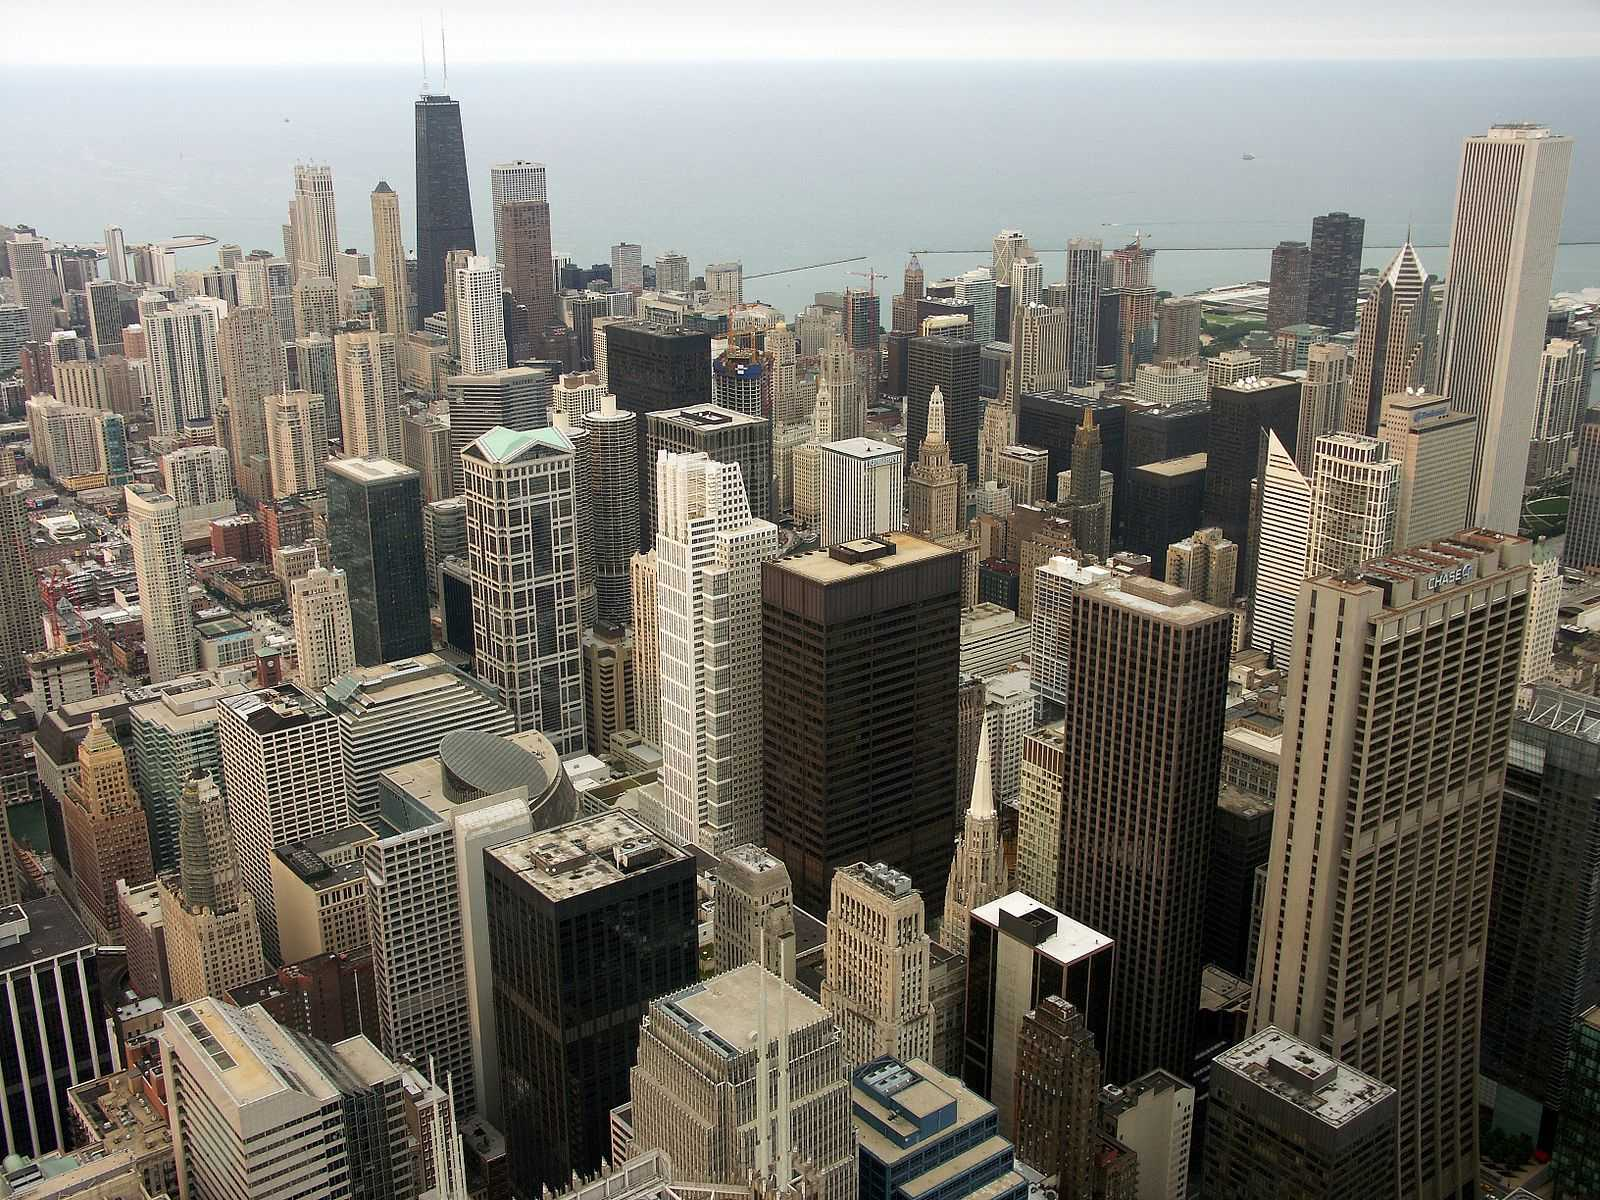 Chicago residents have faced high crime rates and murders in the past. Now, the numbers of murders are in the thousands.